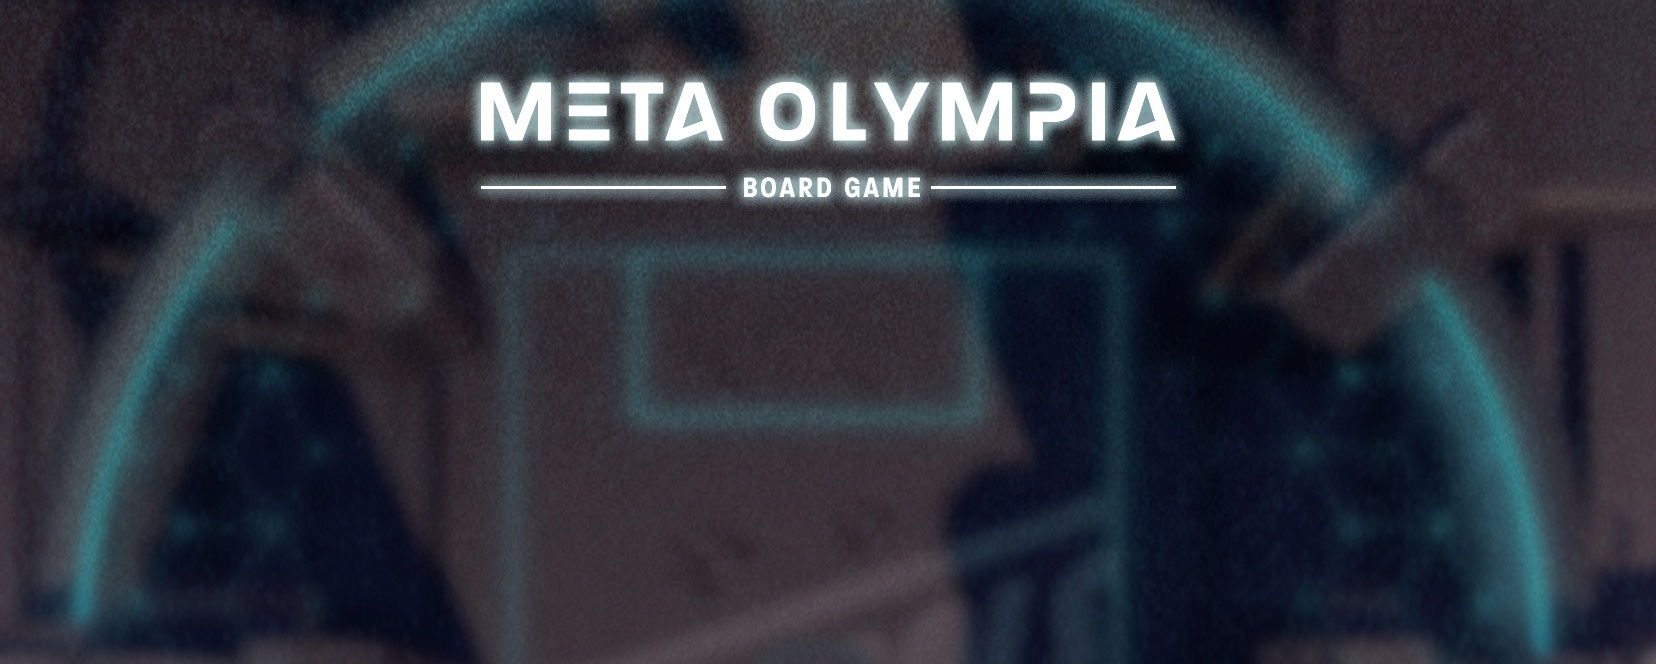 - Our game builds off the Meta Olympia world—humans rediscovering the thrill of physical competition after decades of preoccupation with survival and colonization.Build your team and compete in events using dice-rolling and card combo-building mechanics as you battle for athletic superiority on Mars.